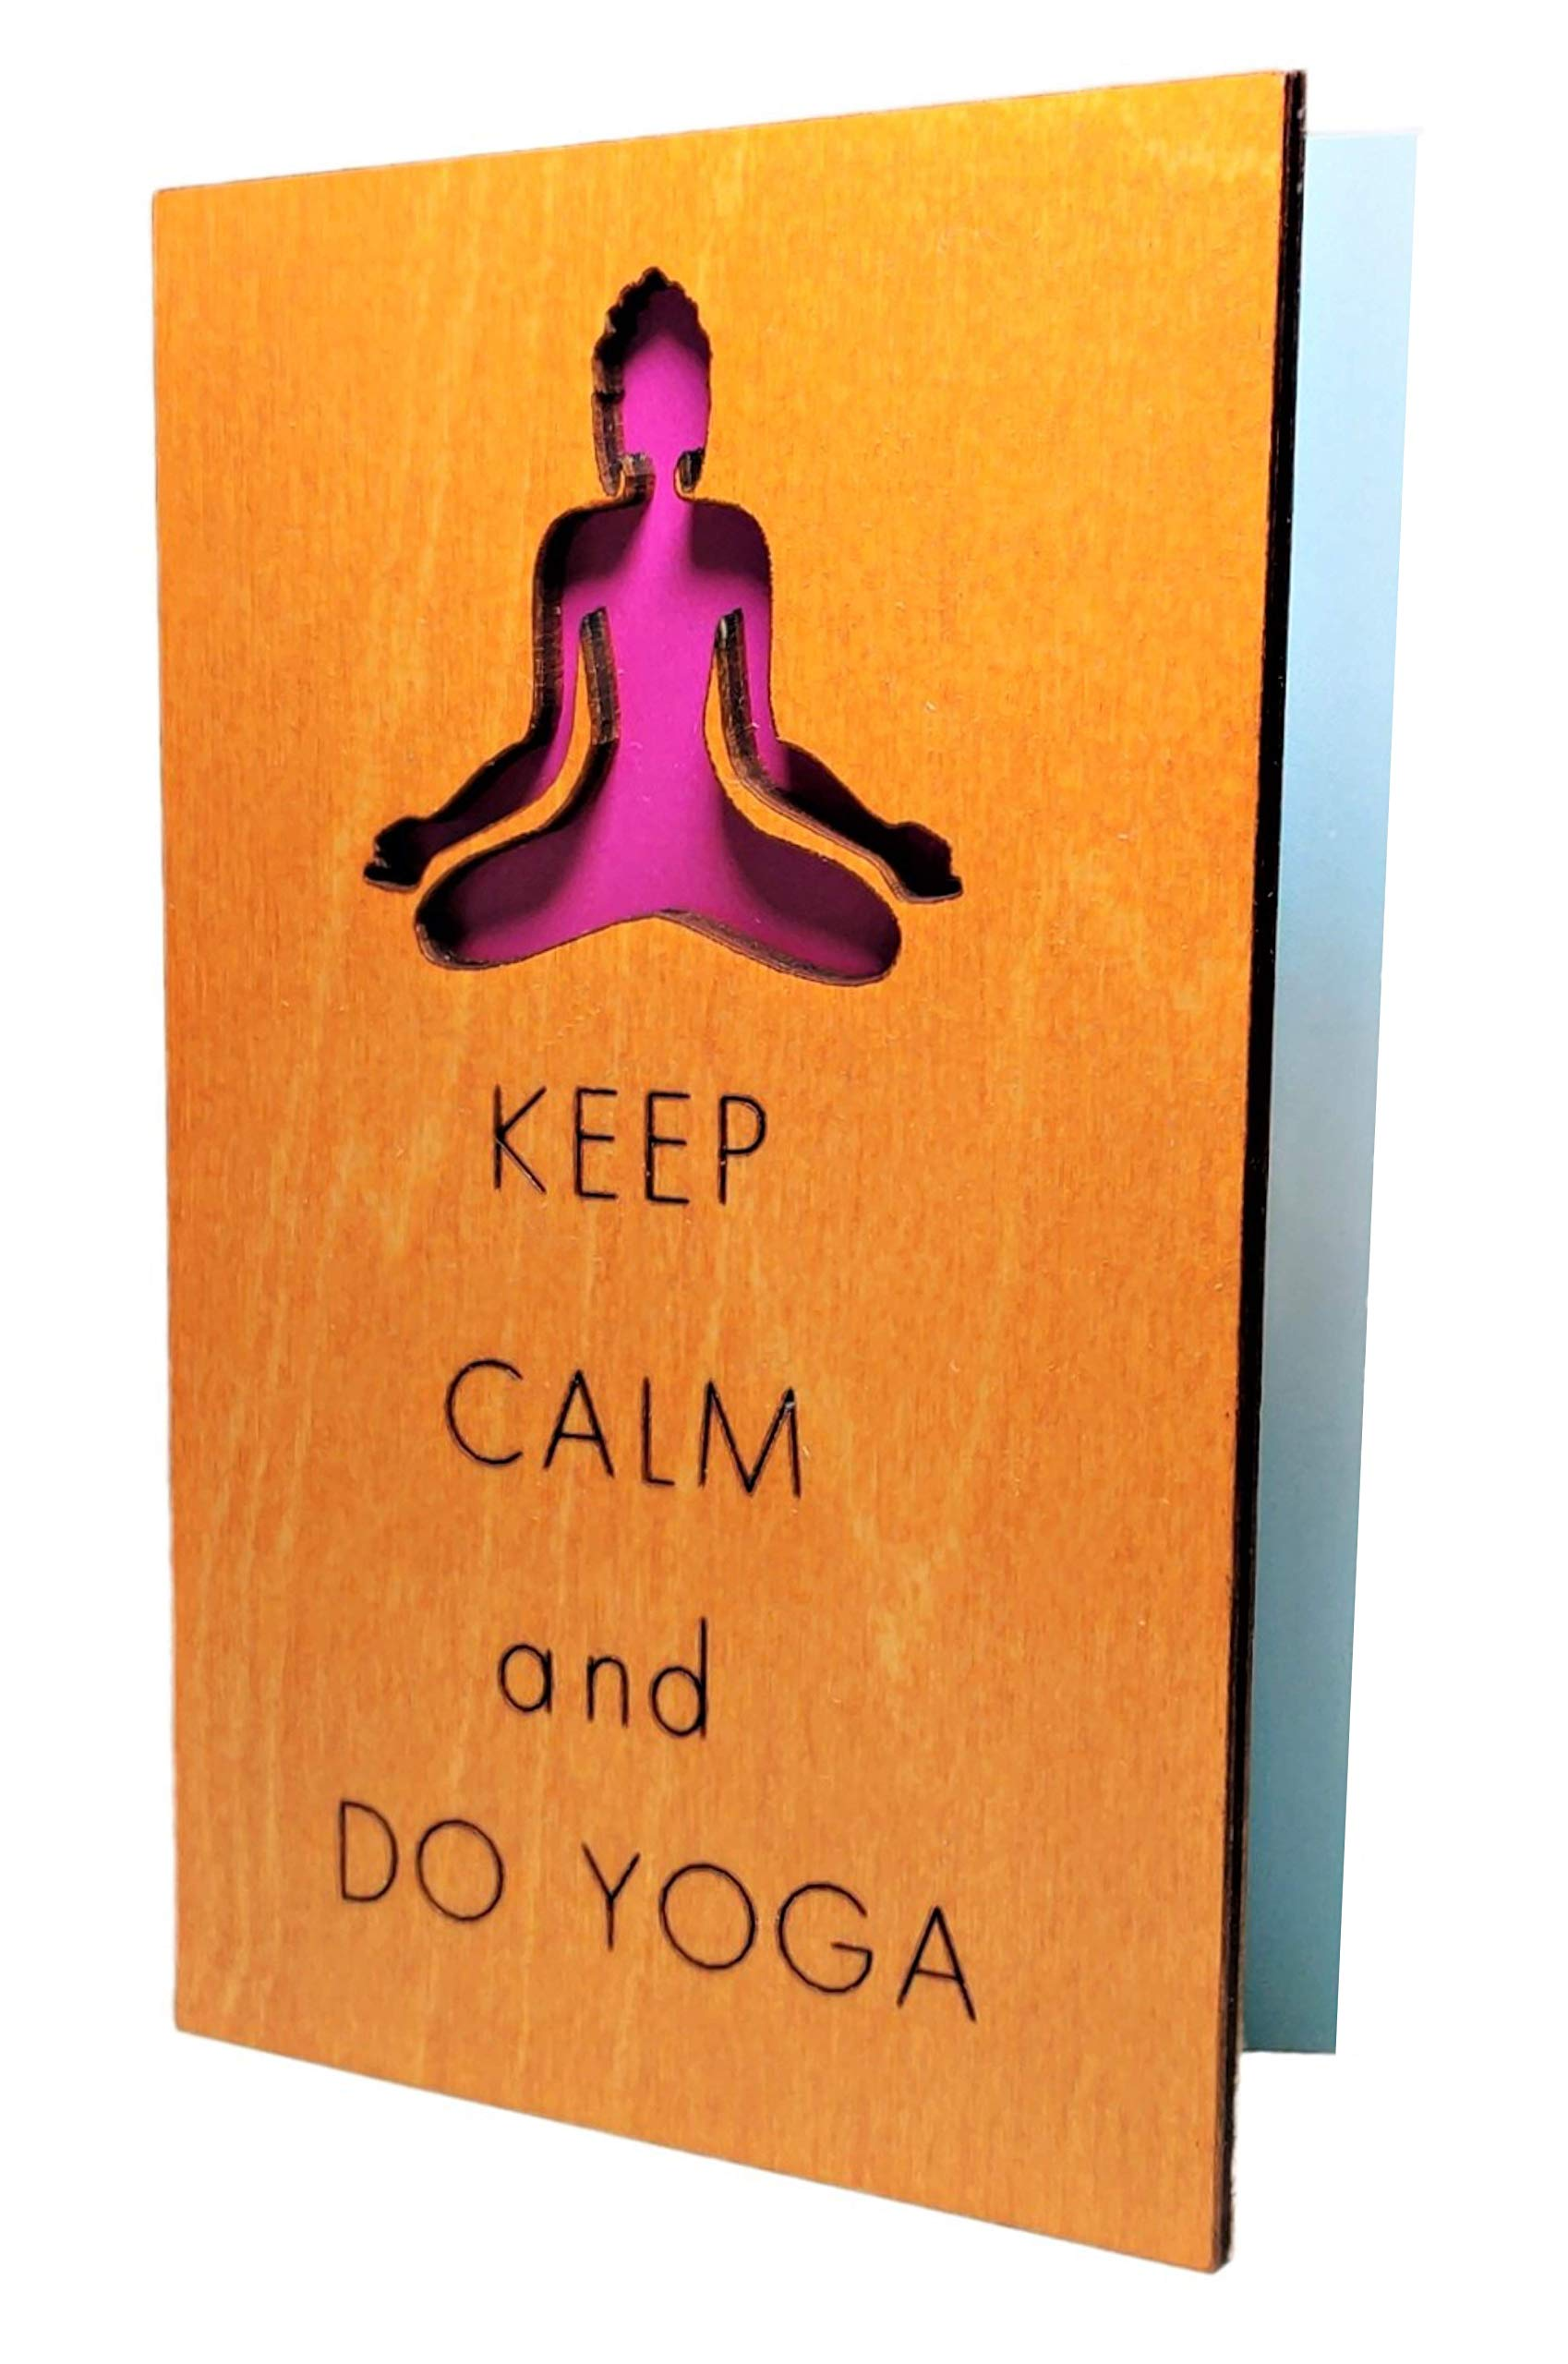 Real Wood Keep Calm and Do Yoga FunnyInspirationalMotivationalGreeting Card Best Cheer Up Happy Birthday Graduation Just Because Get Well Wooden Gift for Him Her Sister FriendAunt TeenCoworker